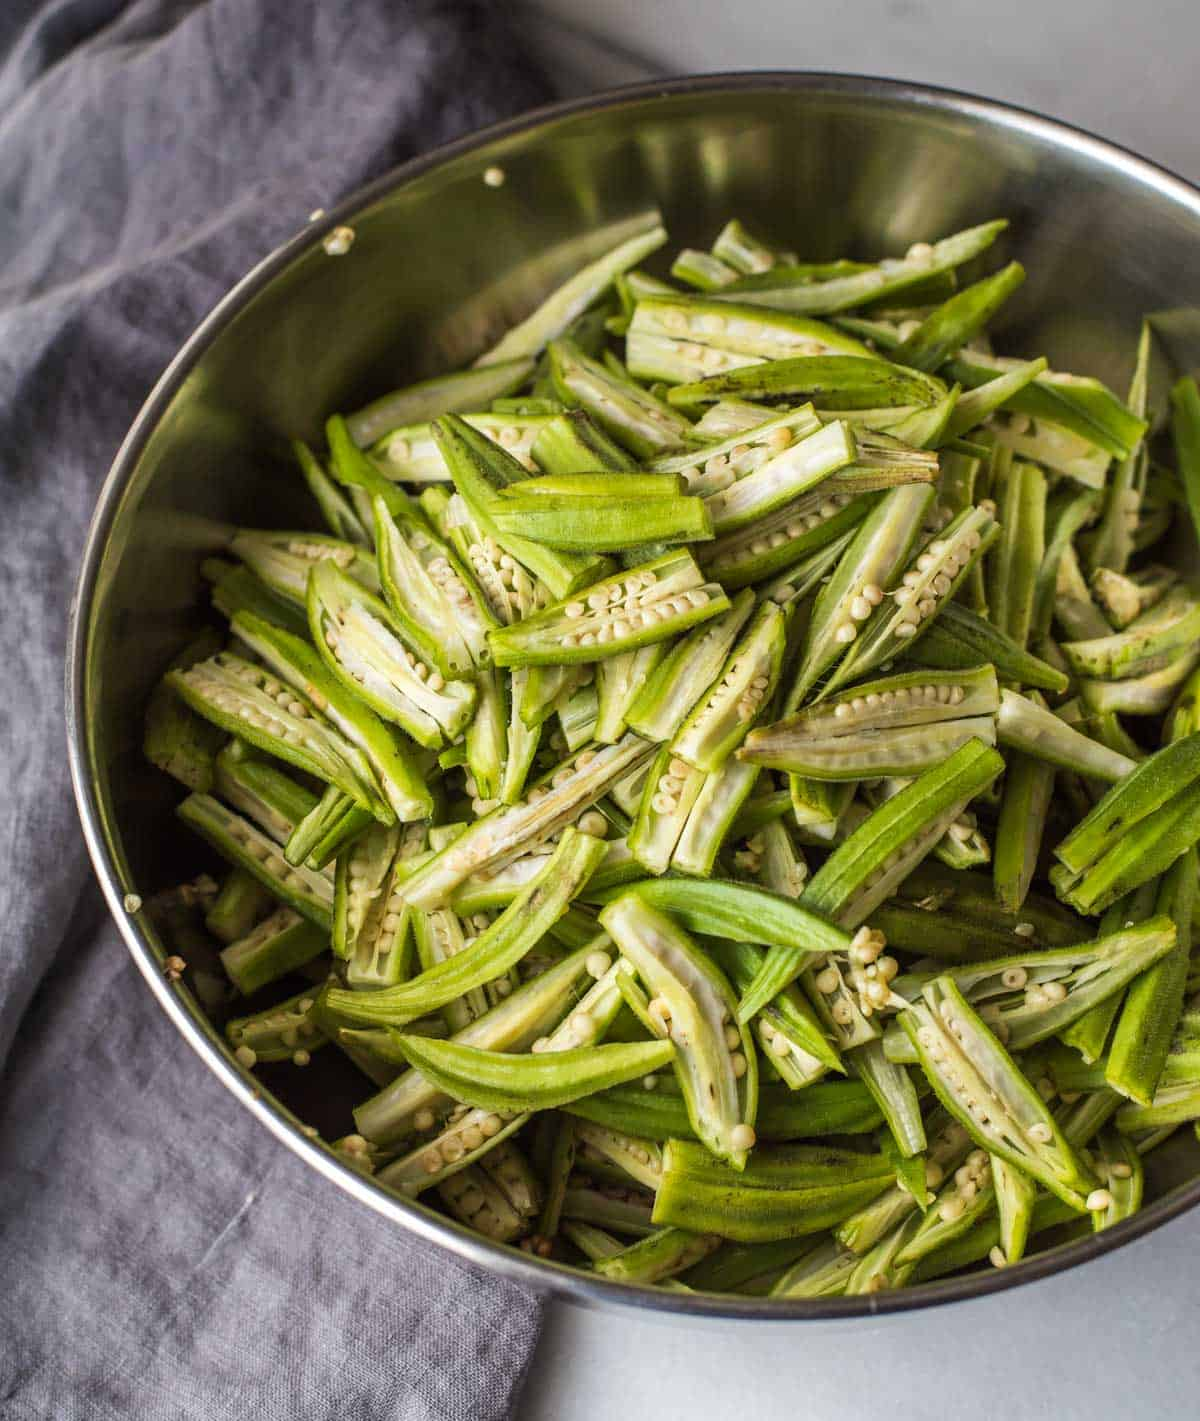 Okras cut lengthwise for the bhindi do pyaza recipe